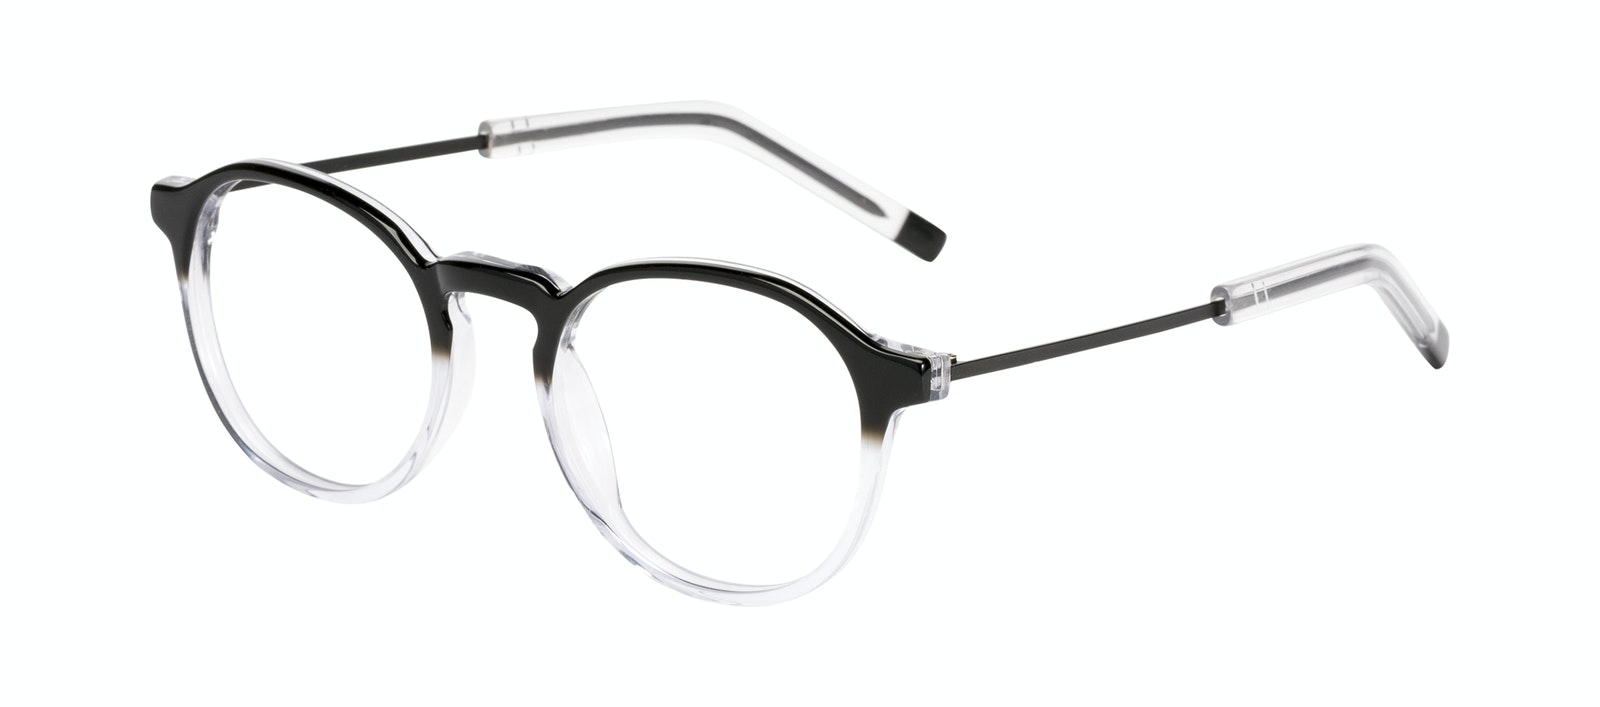 Affordable Fashion Glasses Round Eyeglasses Men Prime S Onyx Clear Tilt